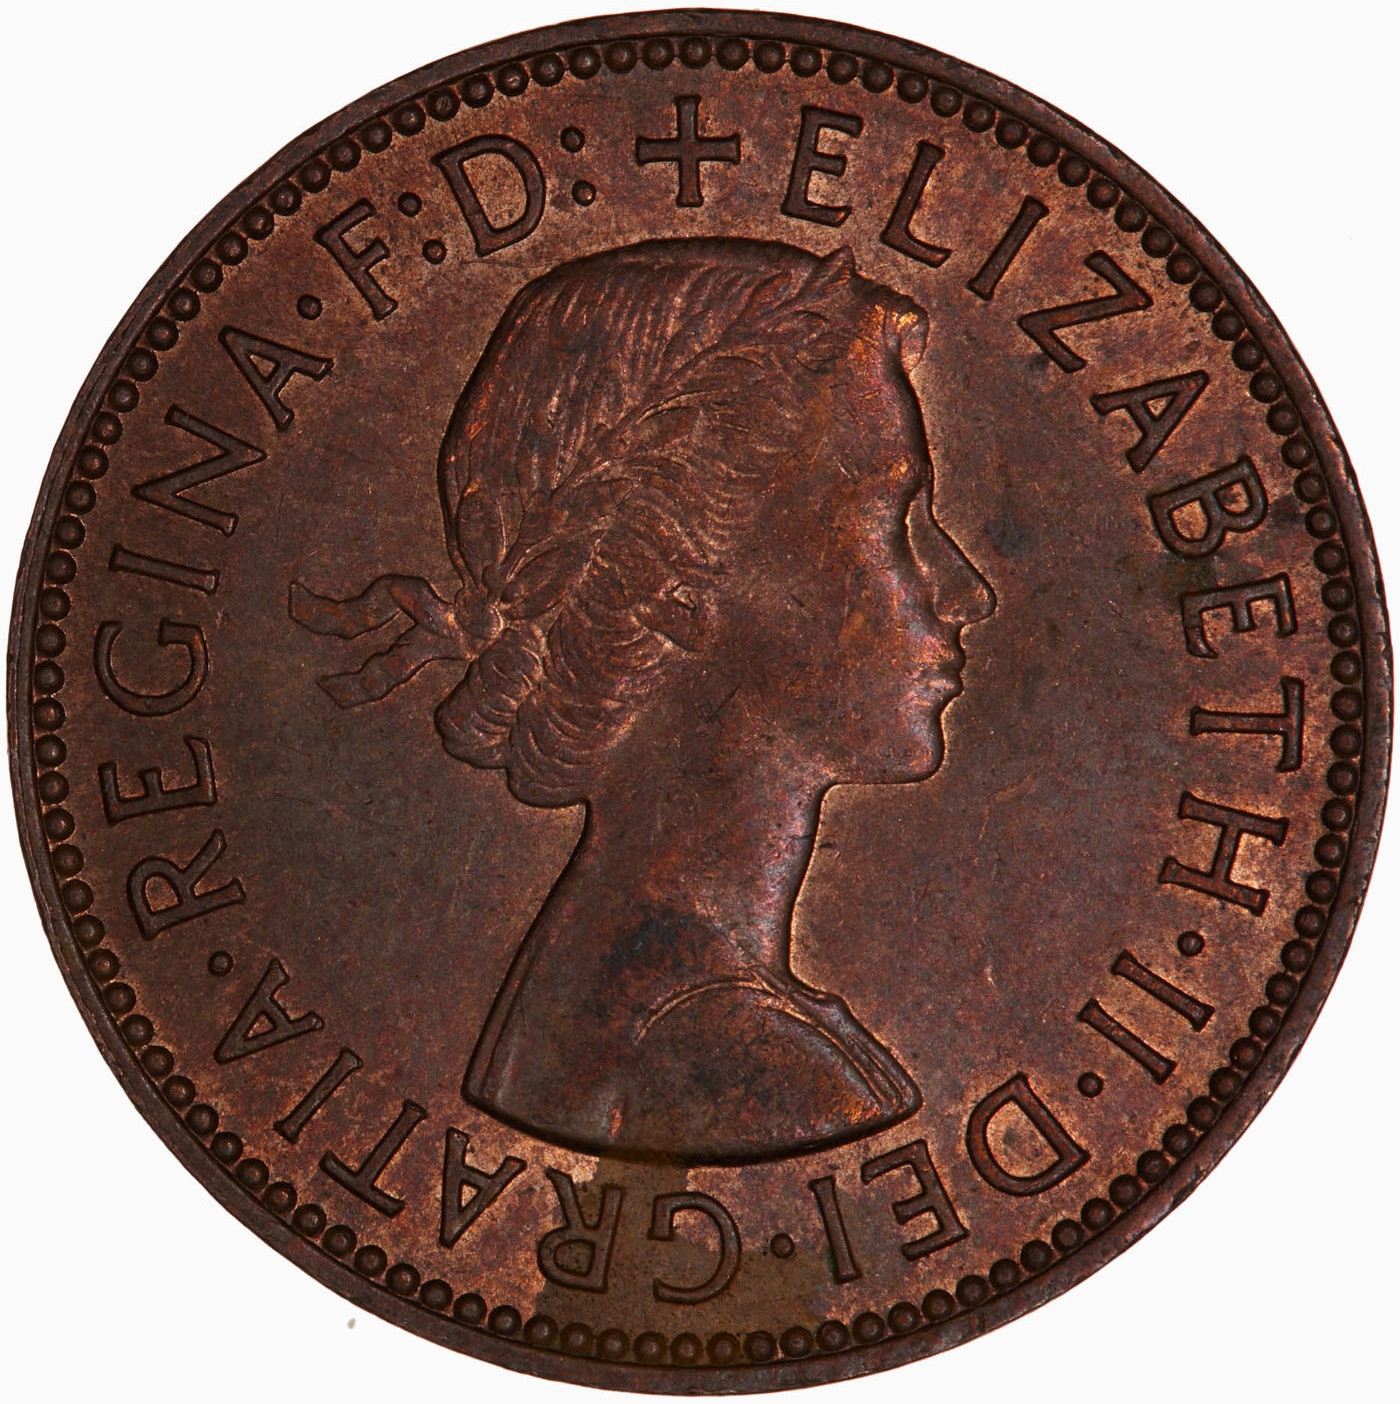 Halfpenny 1967: Photo Coin - Halfpenny, Elizabeth II, Great Britain, 1967